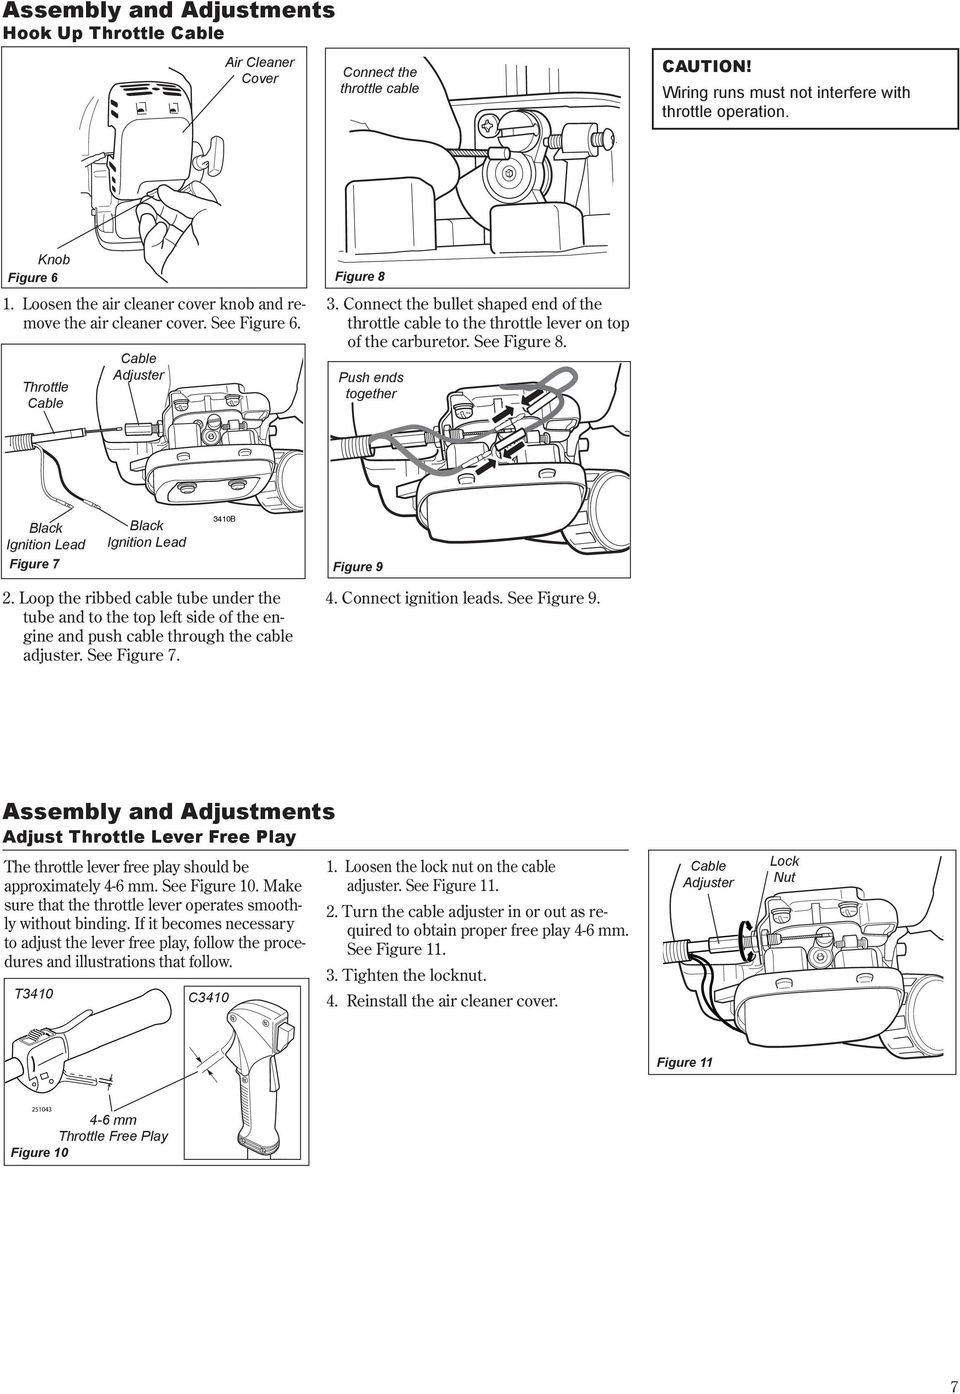 Shindaiwa Owner S Operator Manual T3410 Grass Trimmer C3410 Voyager Pontoon Boat Wiring Diagram Connect The Bullet Shaped End Of Throttle Cable To Lever On Top